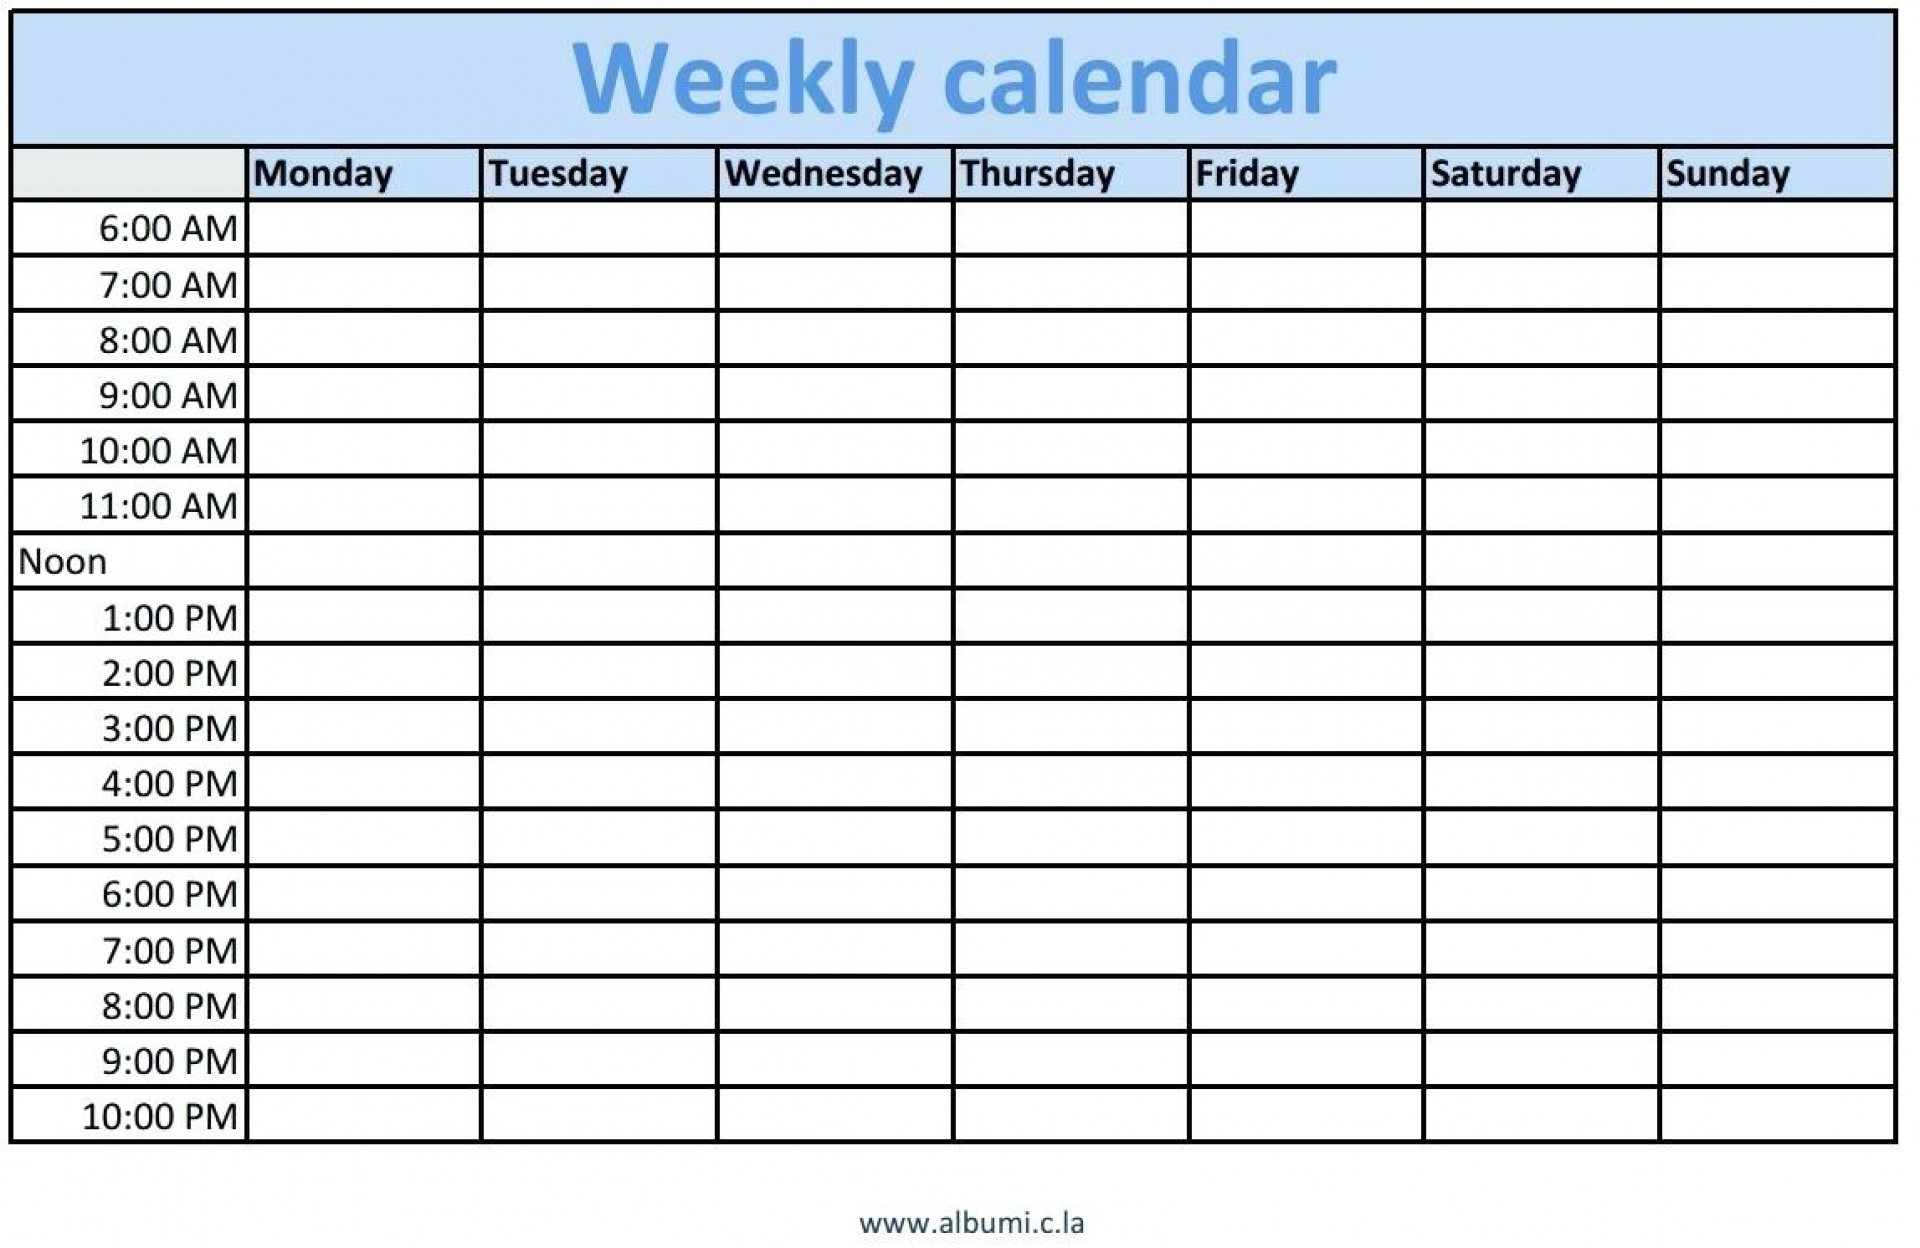 Blank Schedule Template With Time Slots | Example Calendar pertaining to Daily Calendar With Time Slots Printable